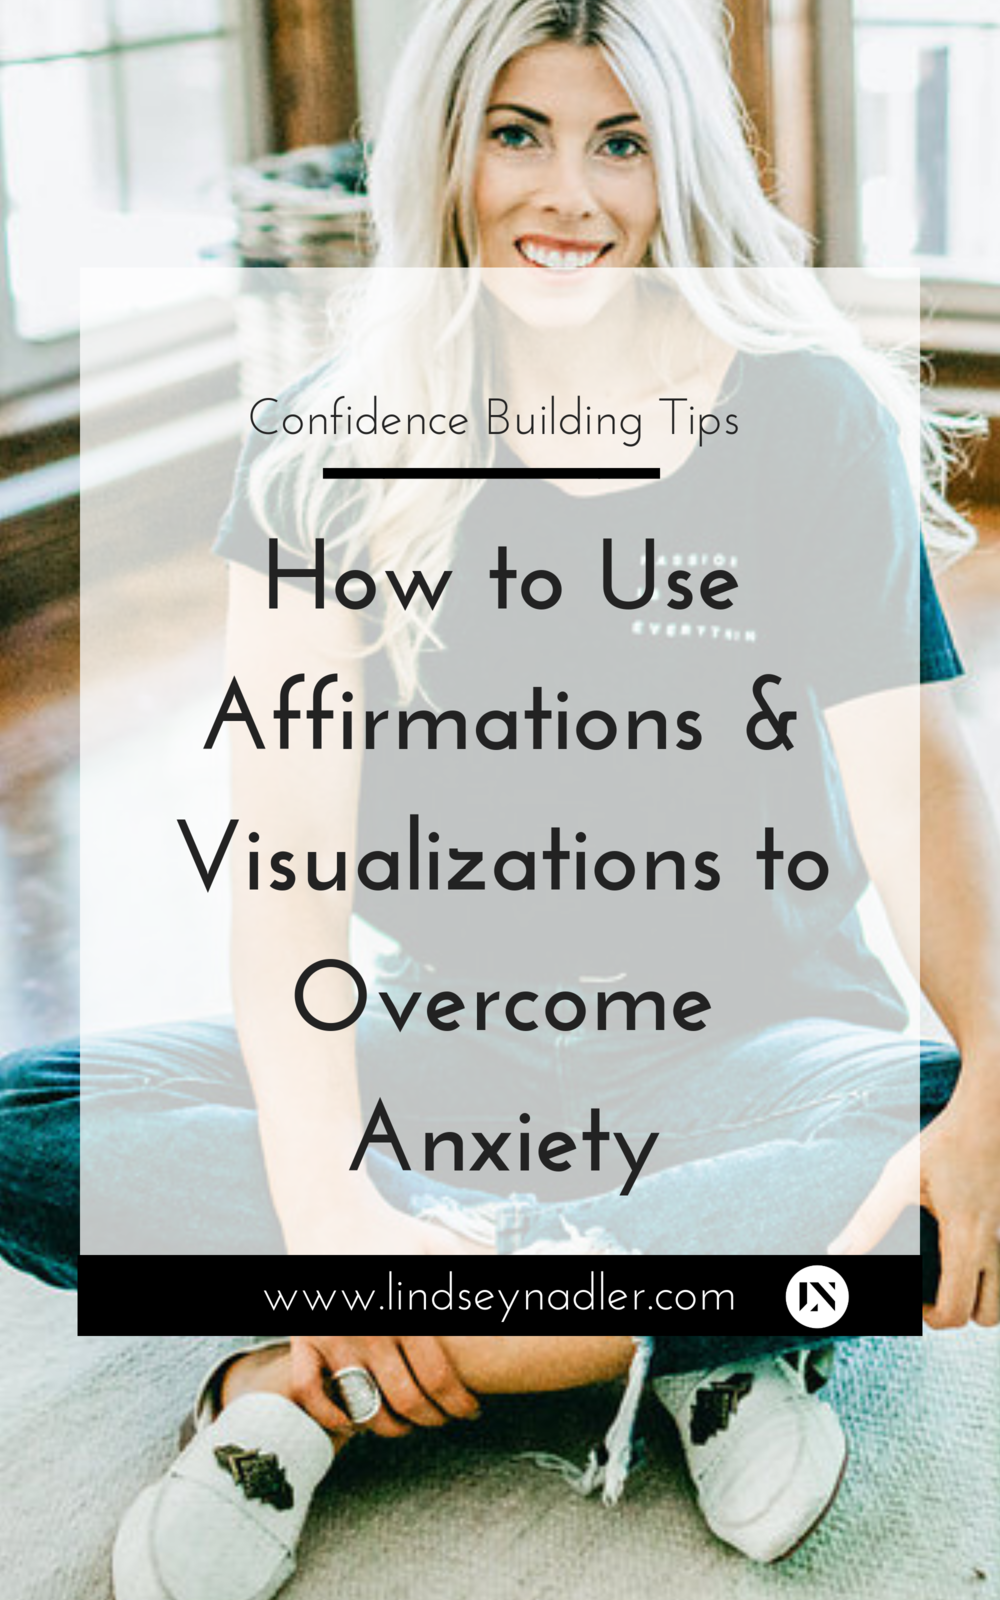 How to Use Affirmations and Visualizations to Overcome Anxiety